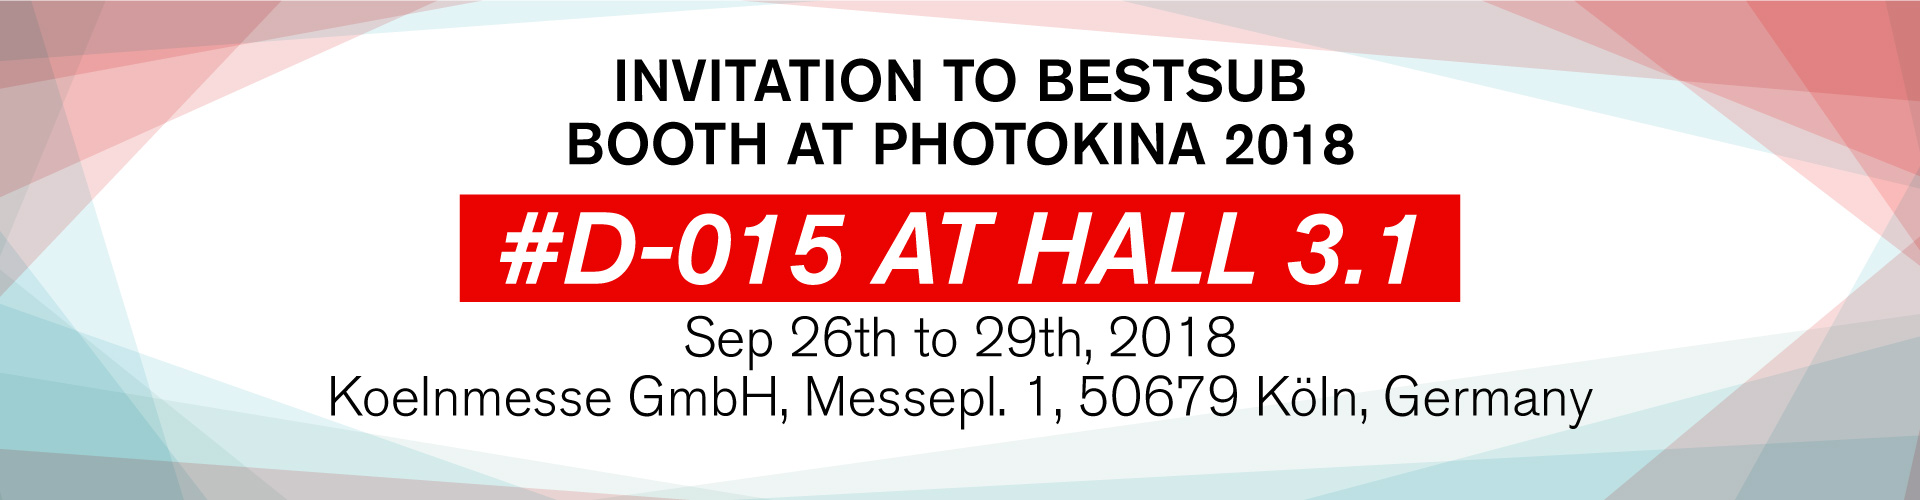 2018-9-17_Invitation_to_BestSub_Booth_at_Photokina_2018_homepage